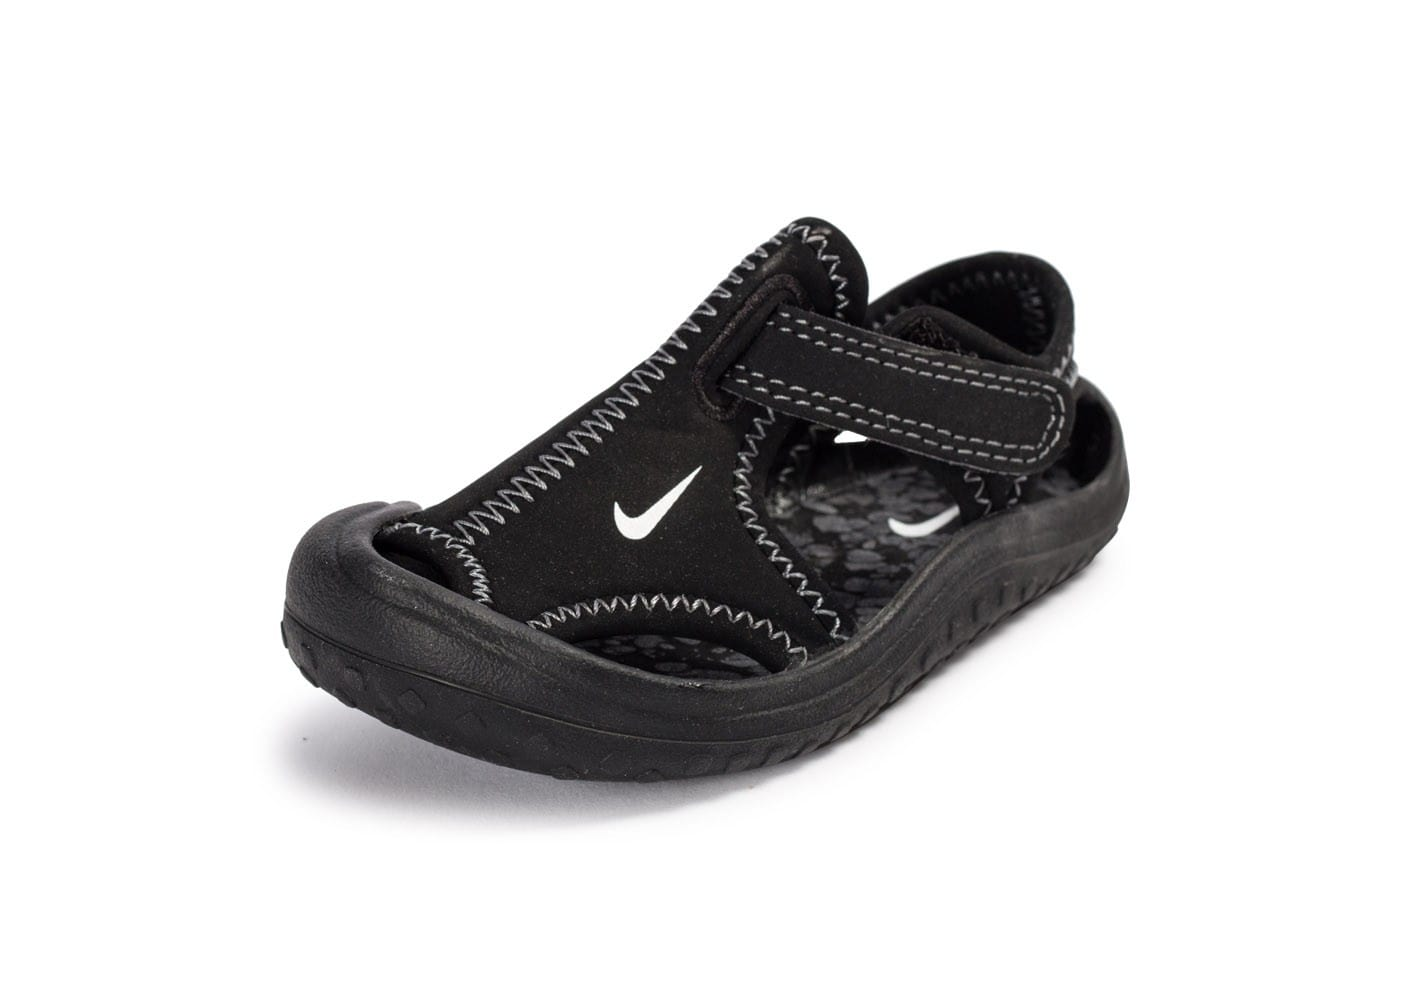 Chaussures Nike Sunray Protect noire vue avant